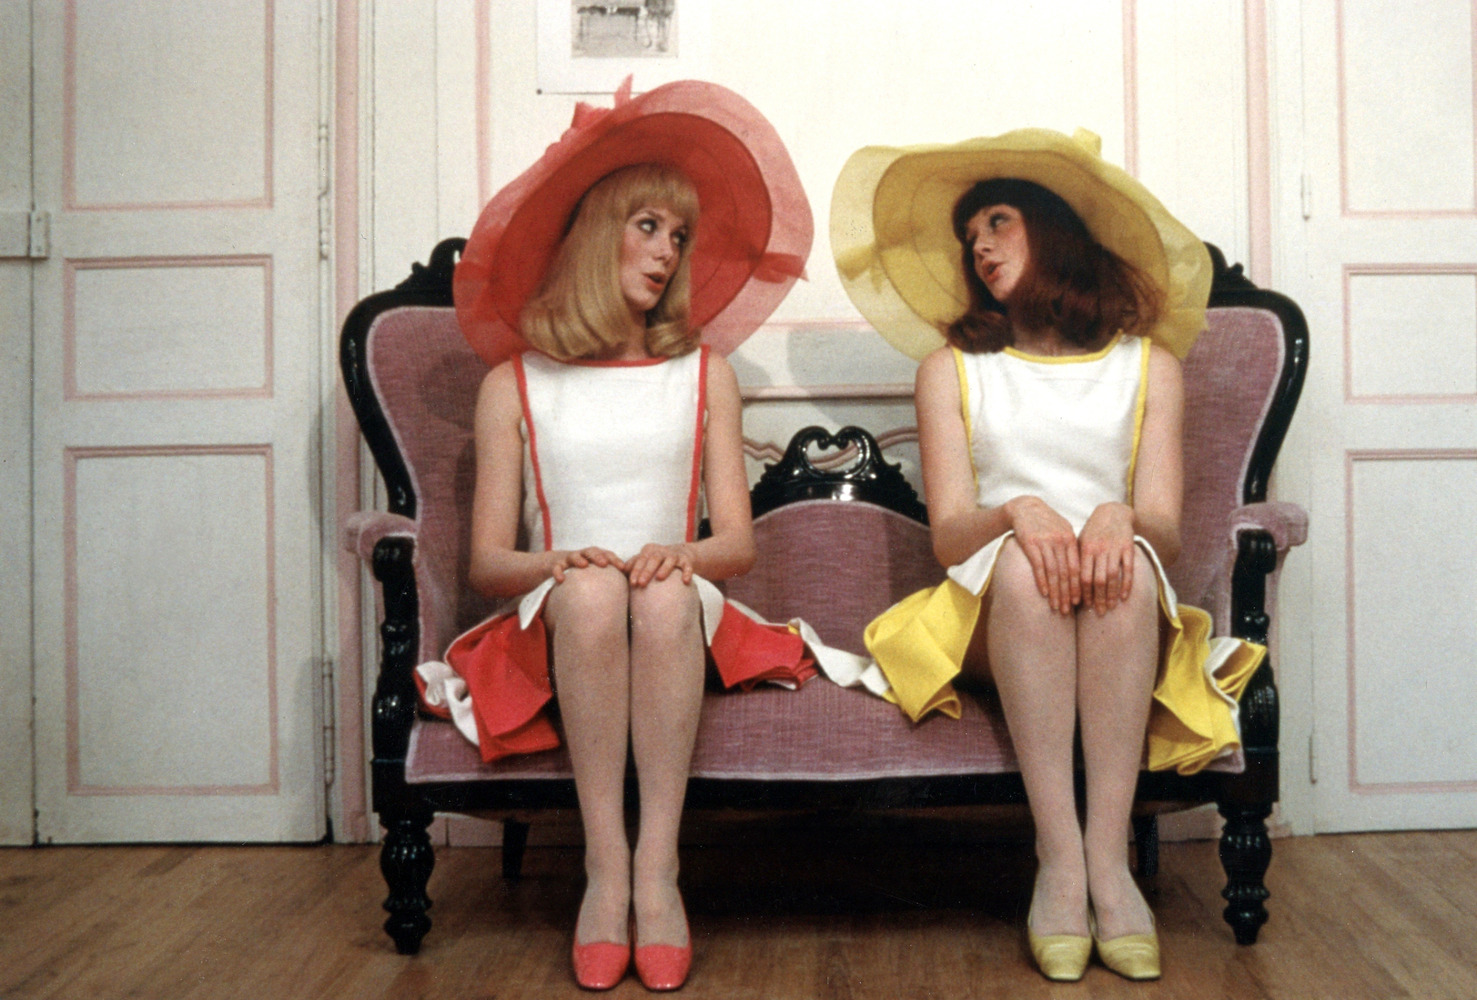 005-solange-delphine-les-demoiselles-de-rochefort-jacques-demy-the-red-list